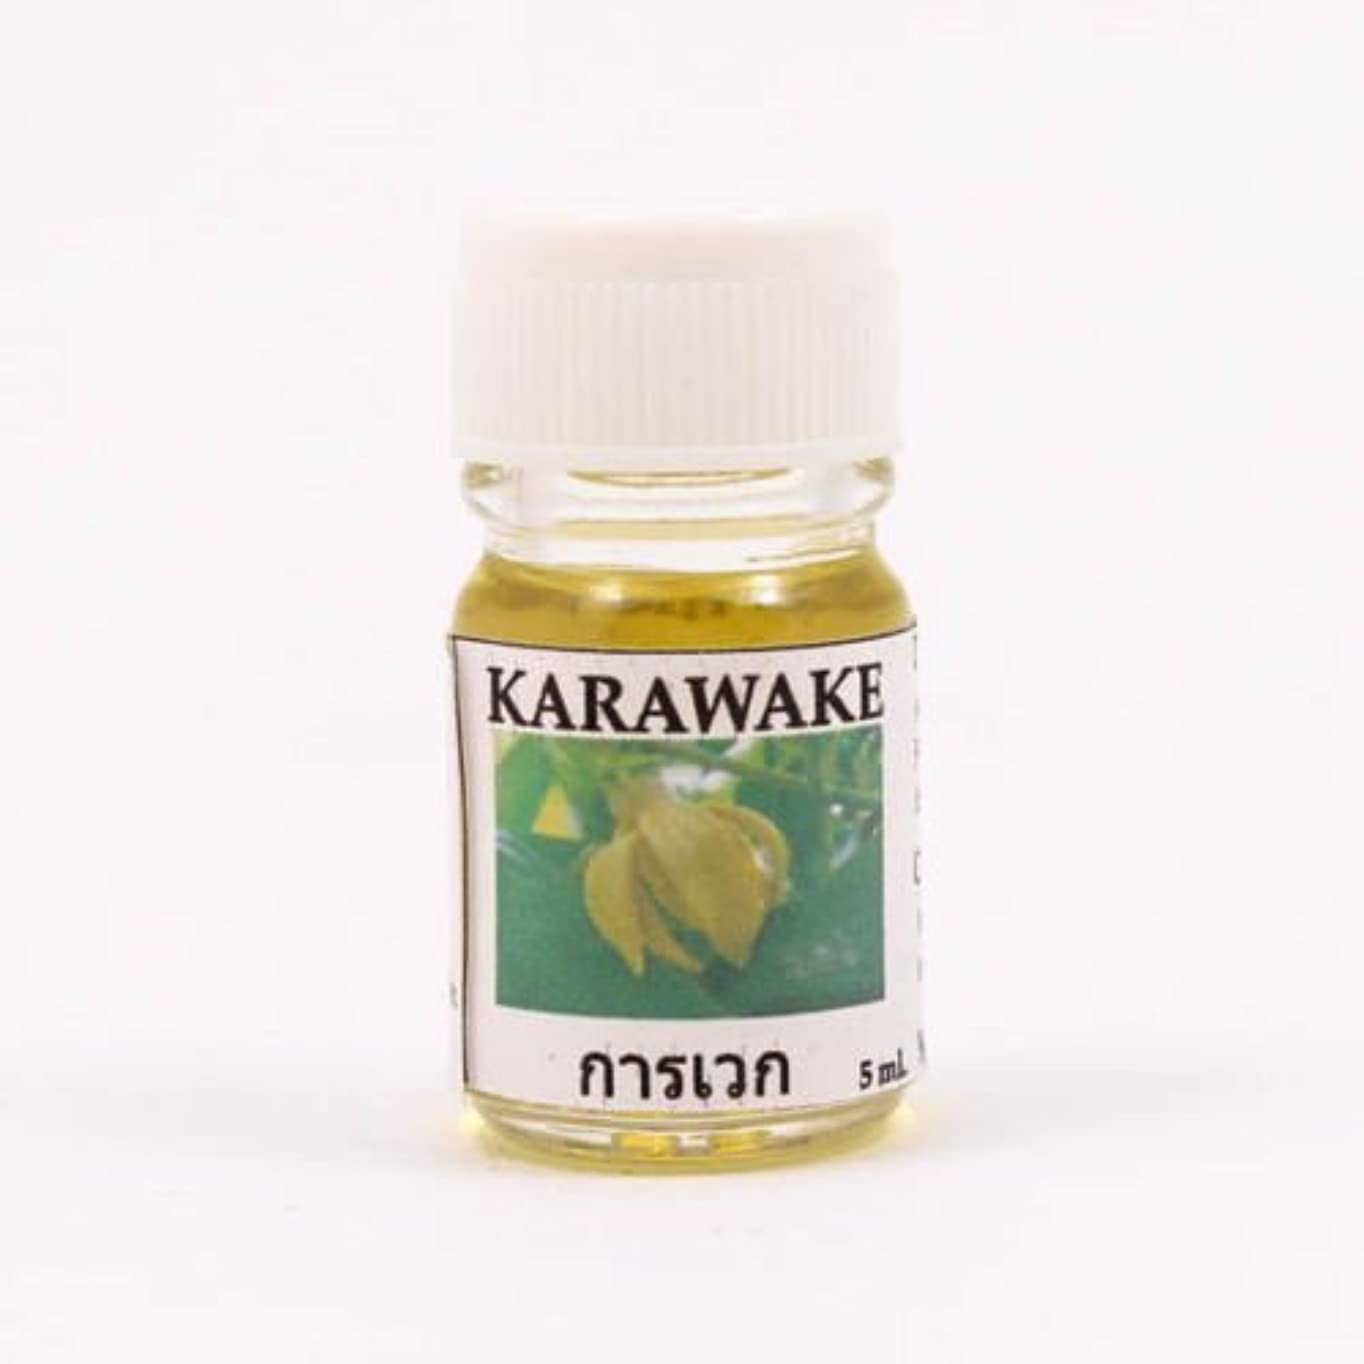 修羅場立ち向かう遊具6X Karawake Aroma Fragrance Essential Oil 5ML. cc Diffuser Burner Therapy